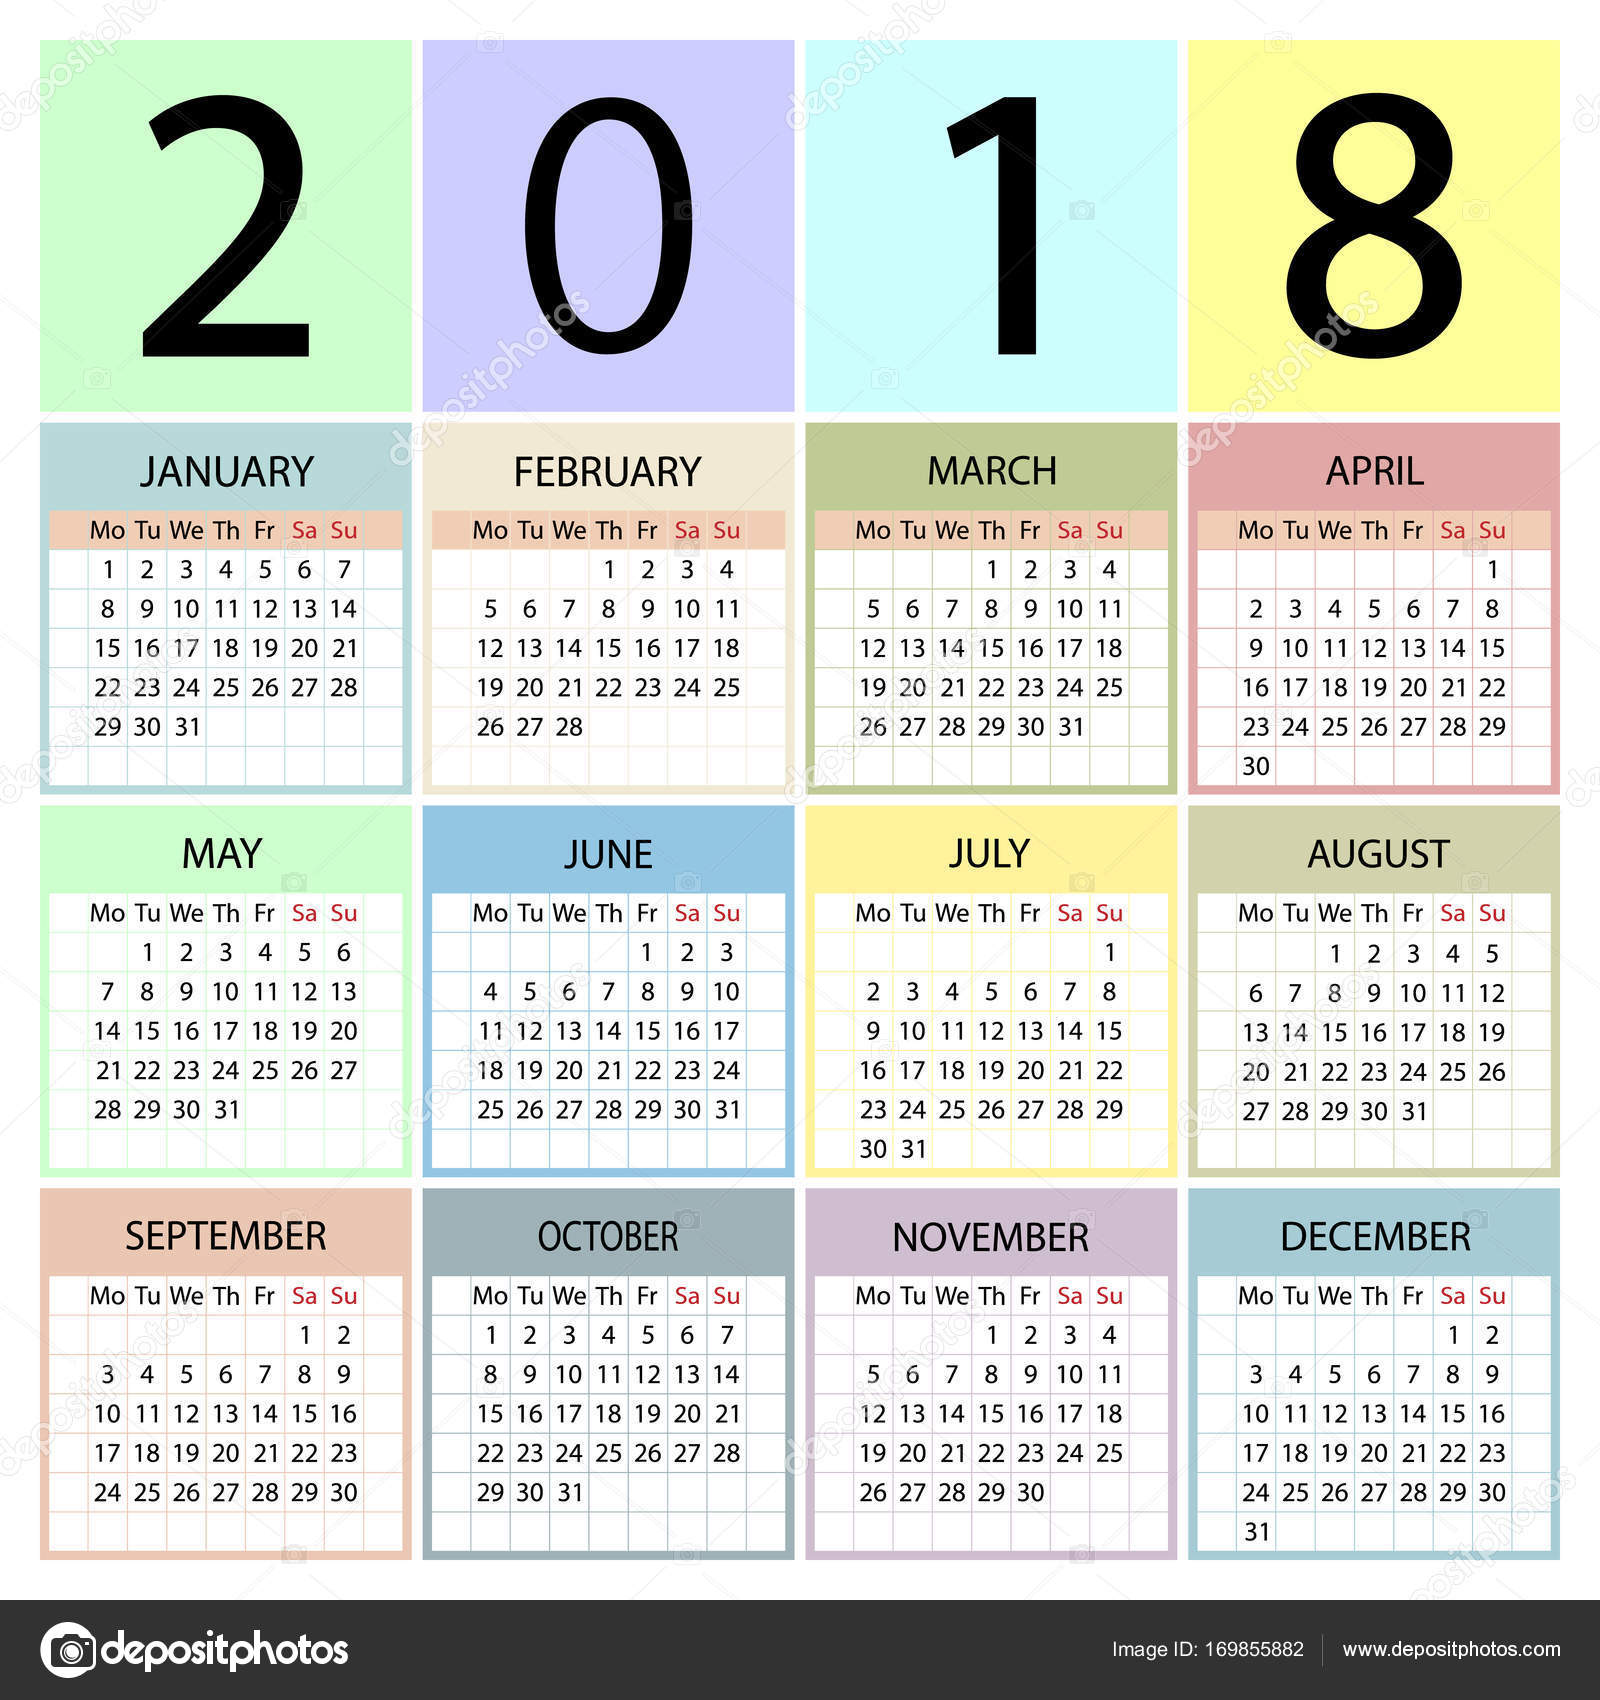 Calendario Con Week 2018.Calendar 2018 Year Week Starts With Monday Stock Vector